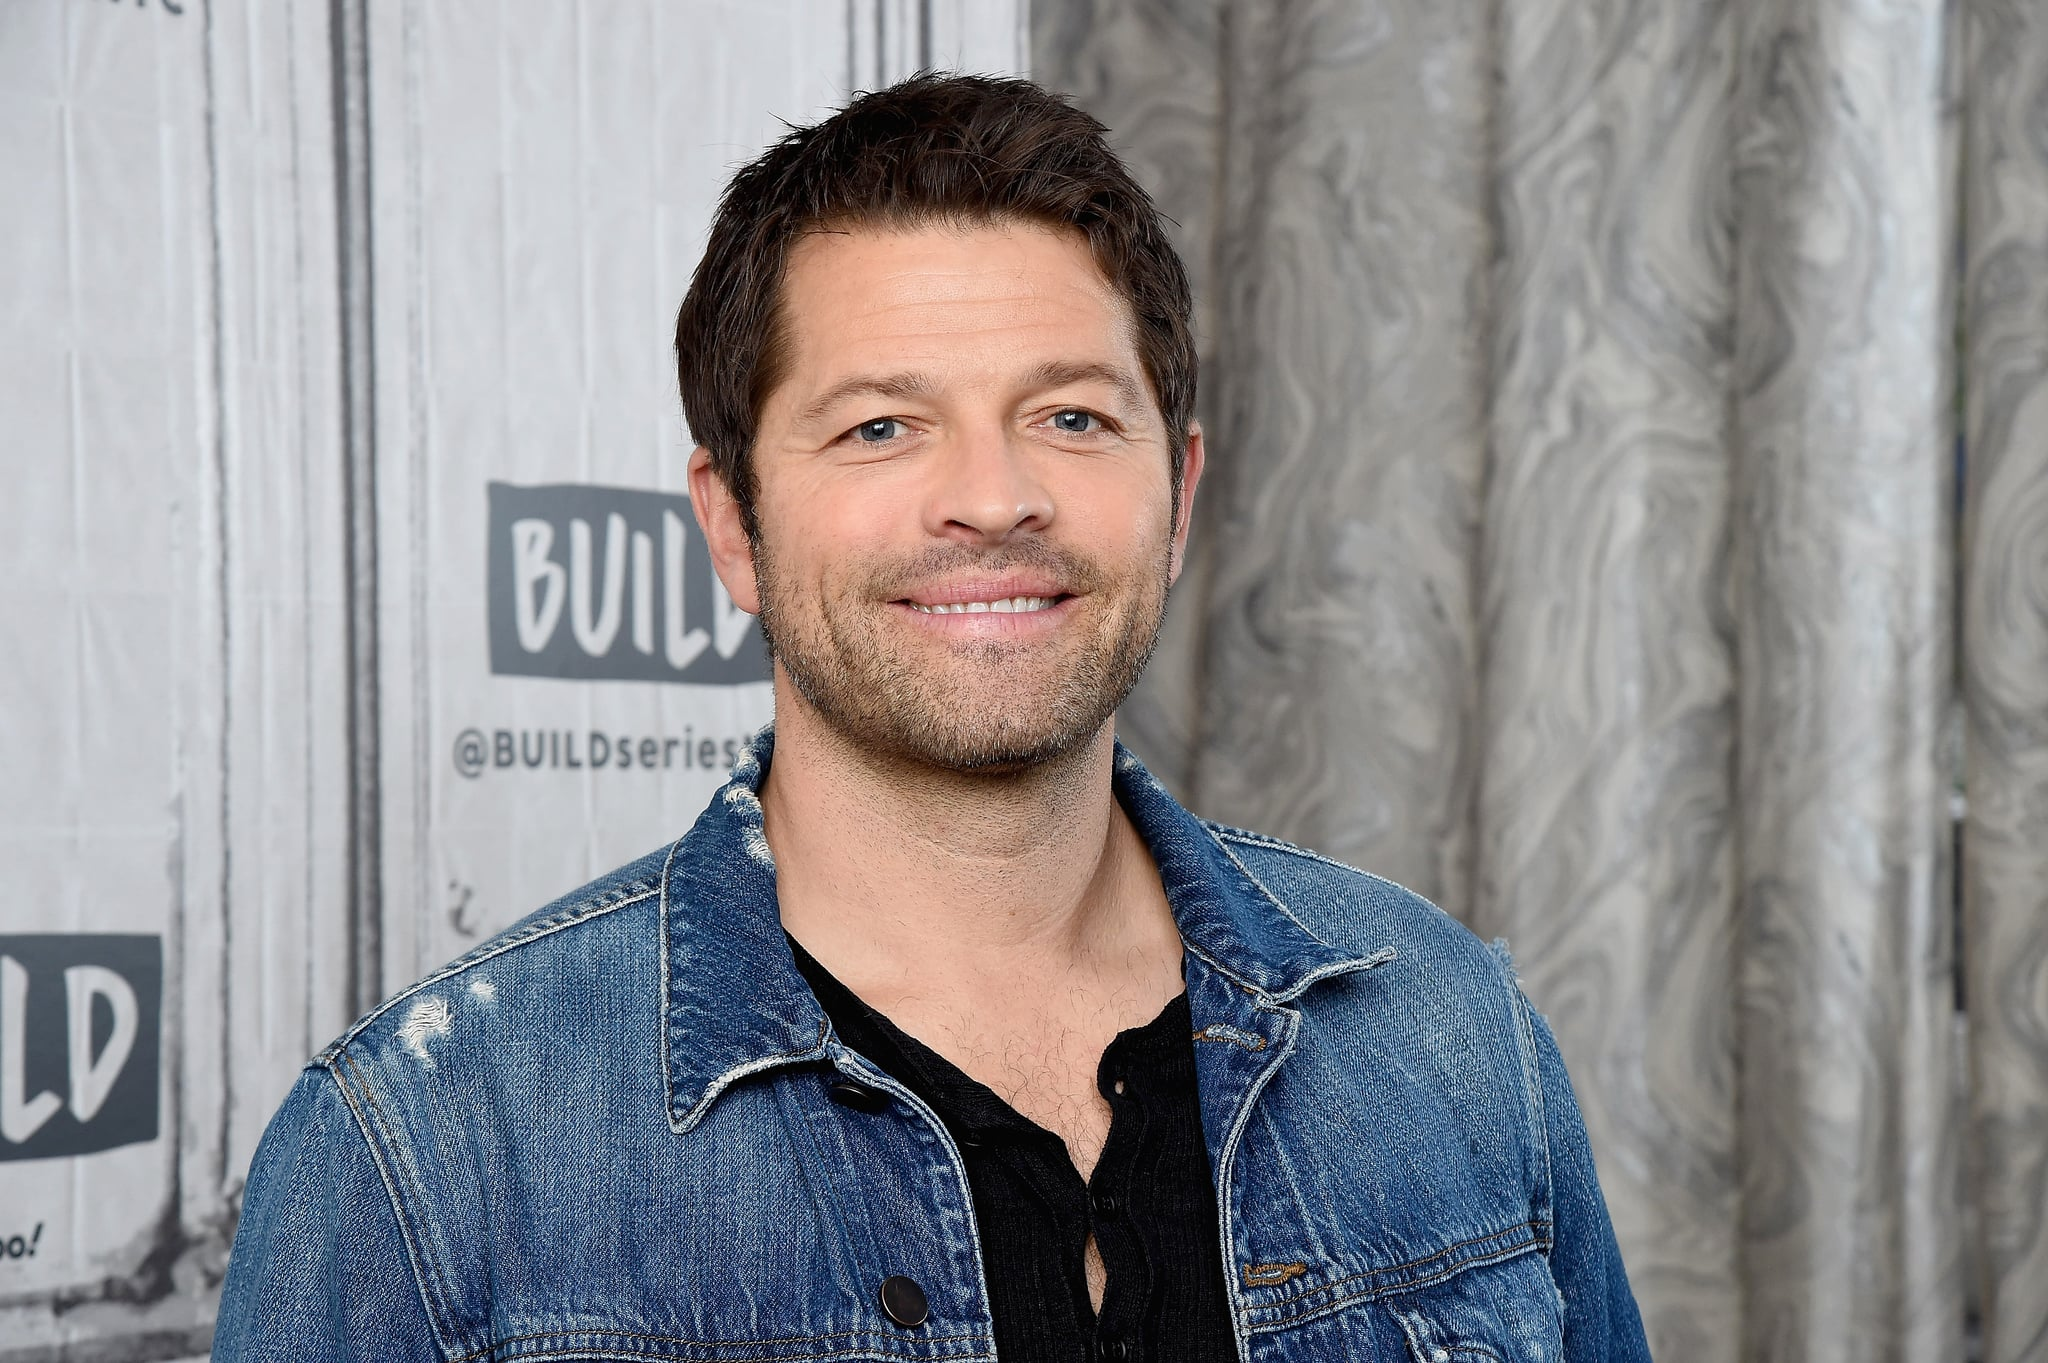 NEW YORK, NEW YORK - NOVEMBER 04: Actor and author Misha Collins visits the Build Series to discuss the book